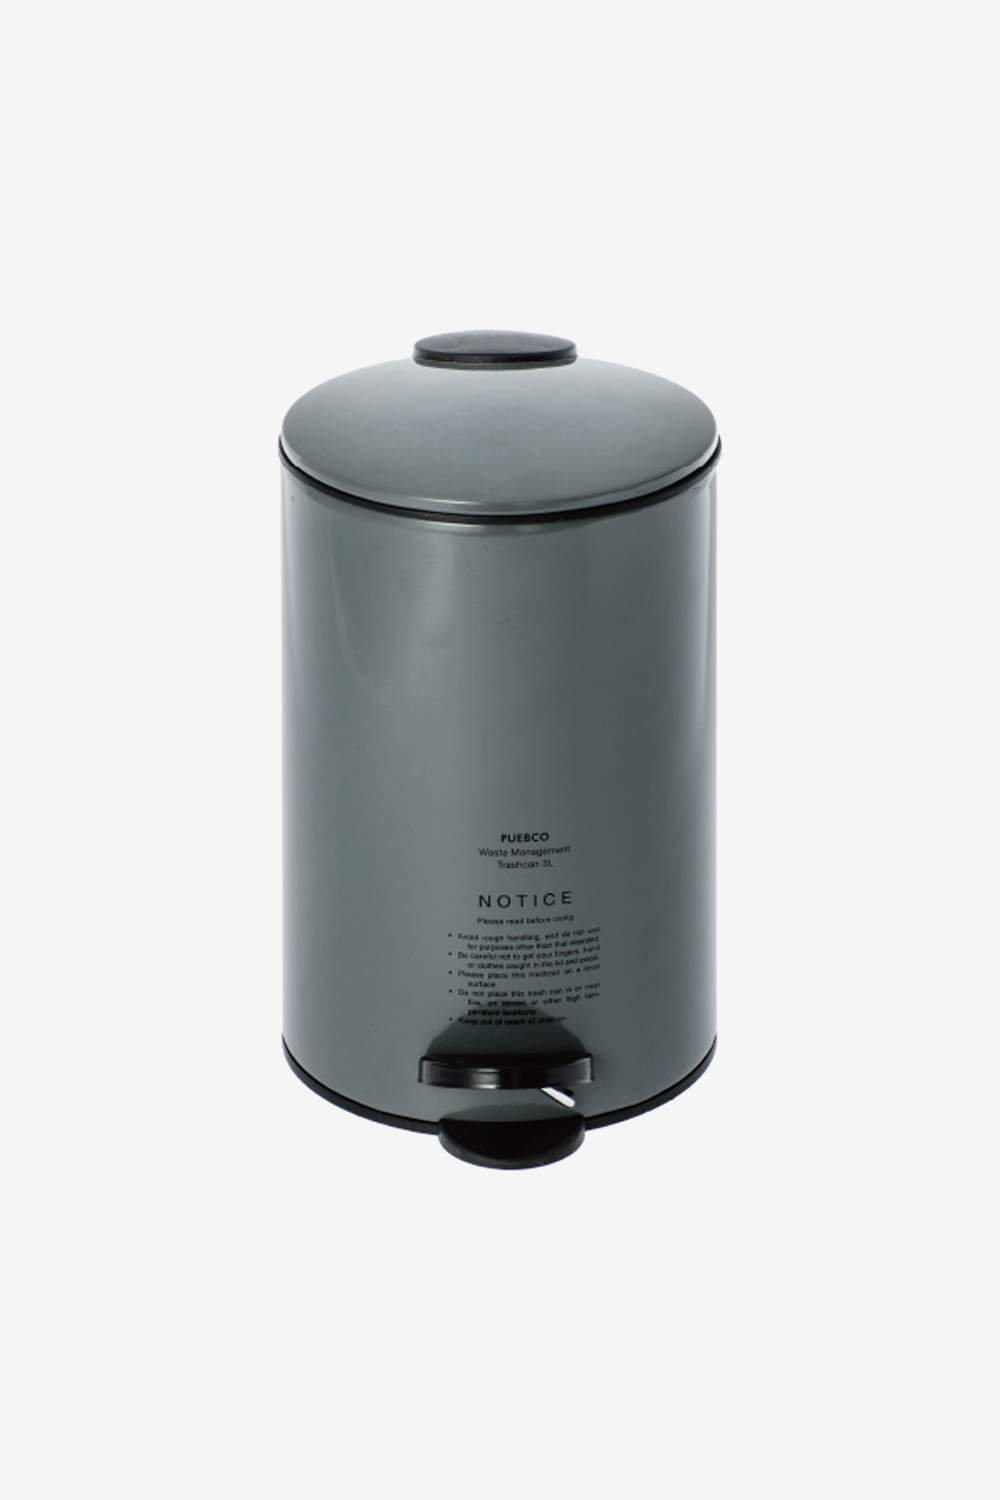 PUEBCO Trashcan Grey, Tools, PUEBCO - Six and Sons